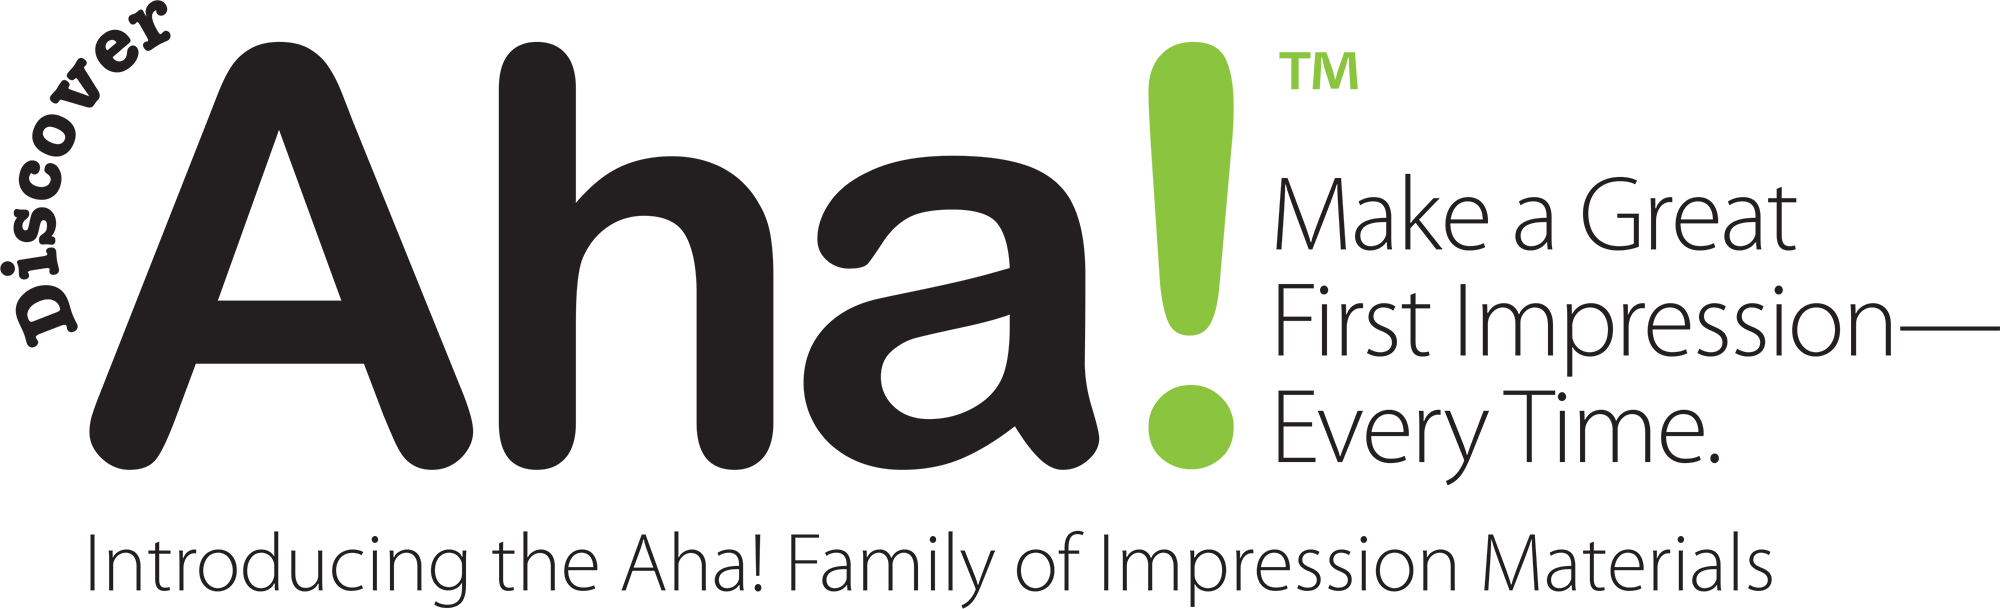 Introducing the Aha! Family of Impression Materials